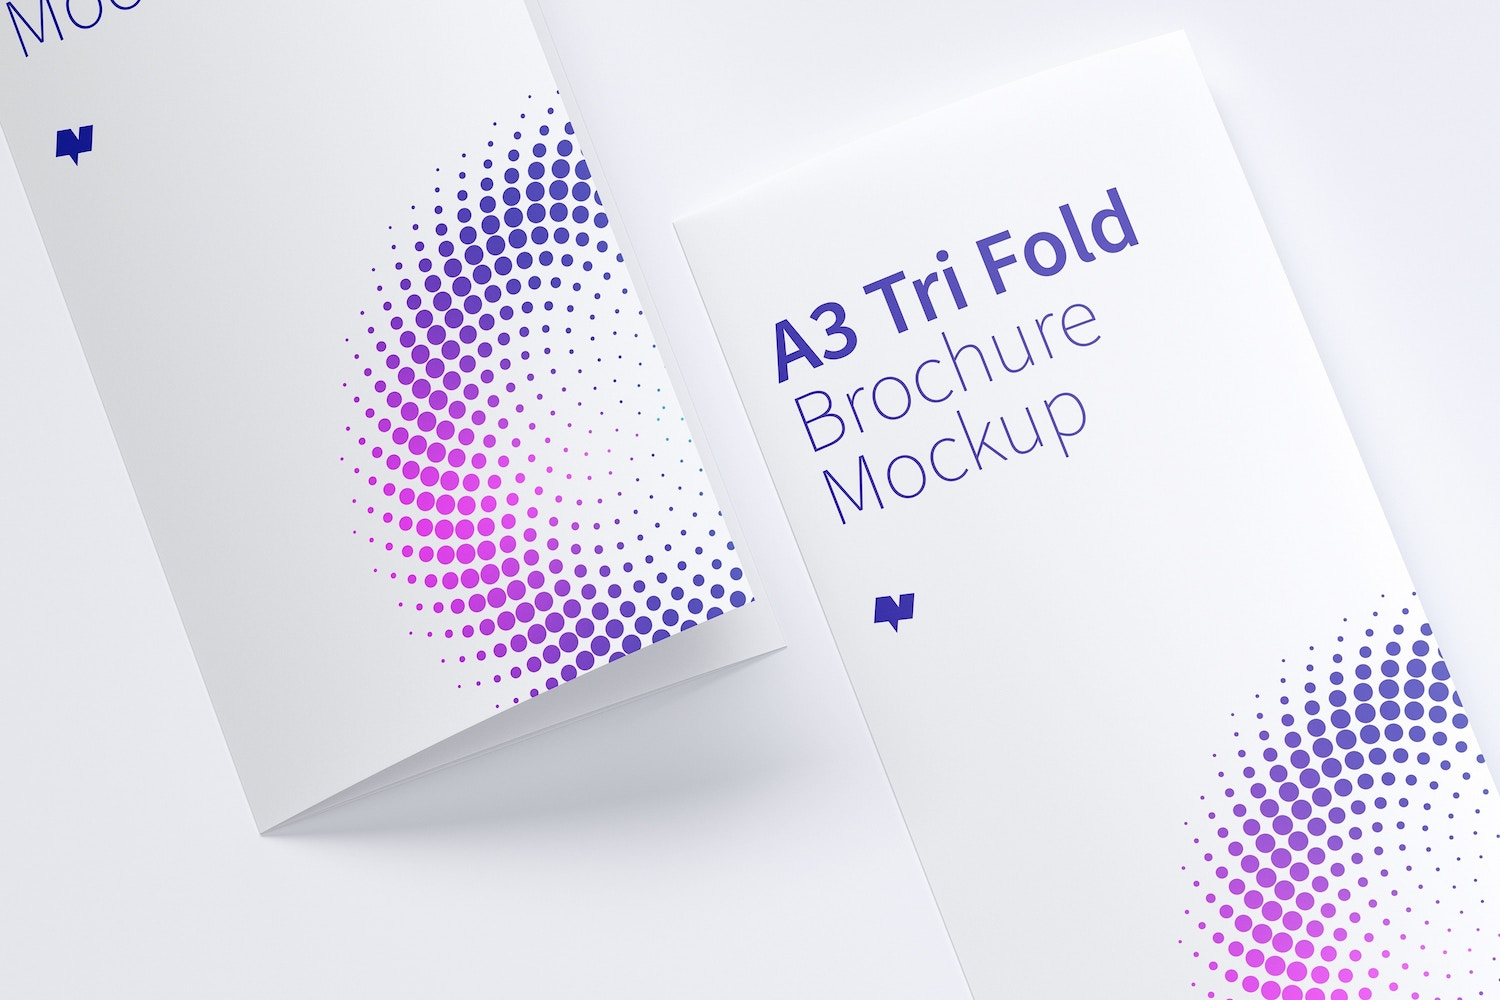 A3 Trifold Brochure Mockup 05 by Original Mockups on Original Mockups